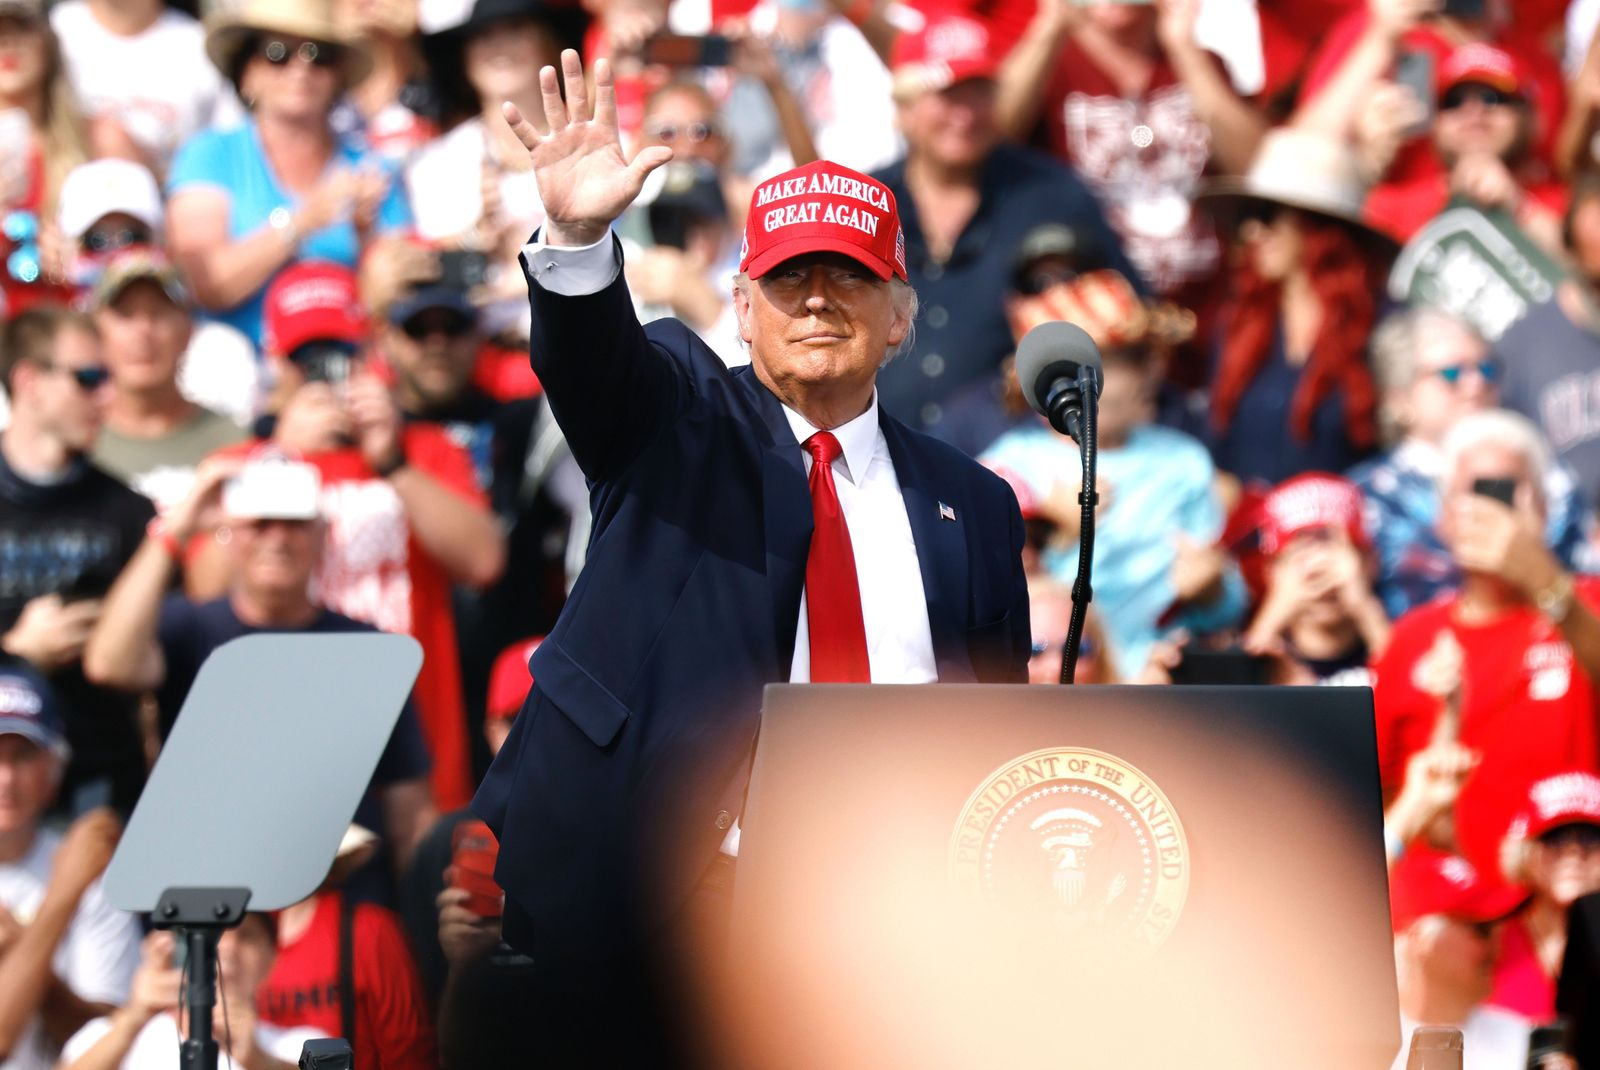 Trump Rally in Tampa Florida, USA - 29 Oct 2020